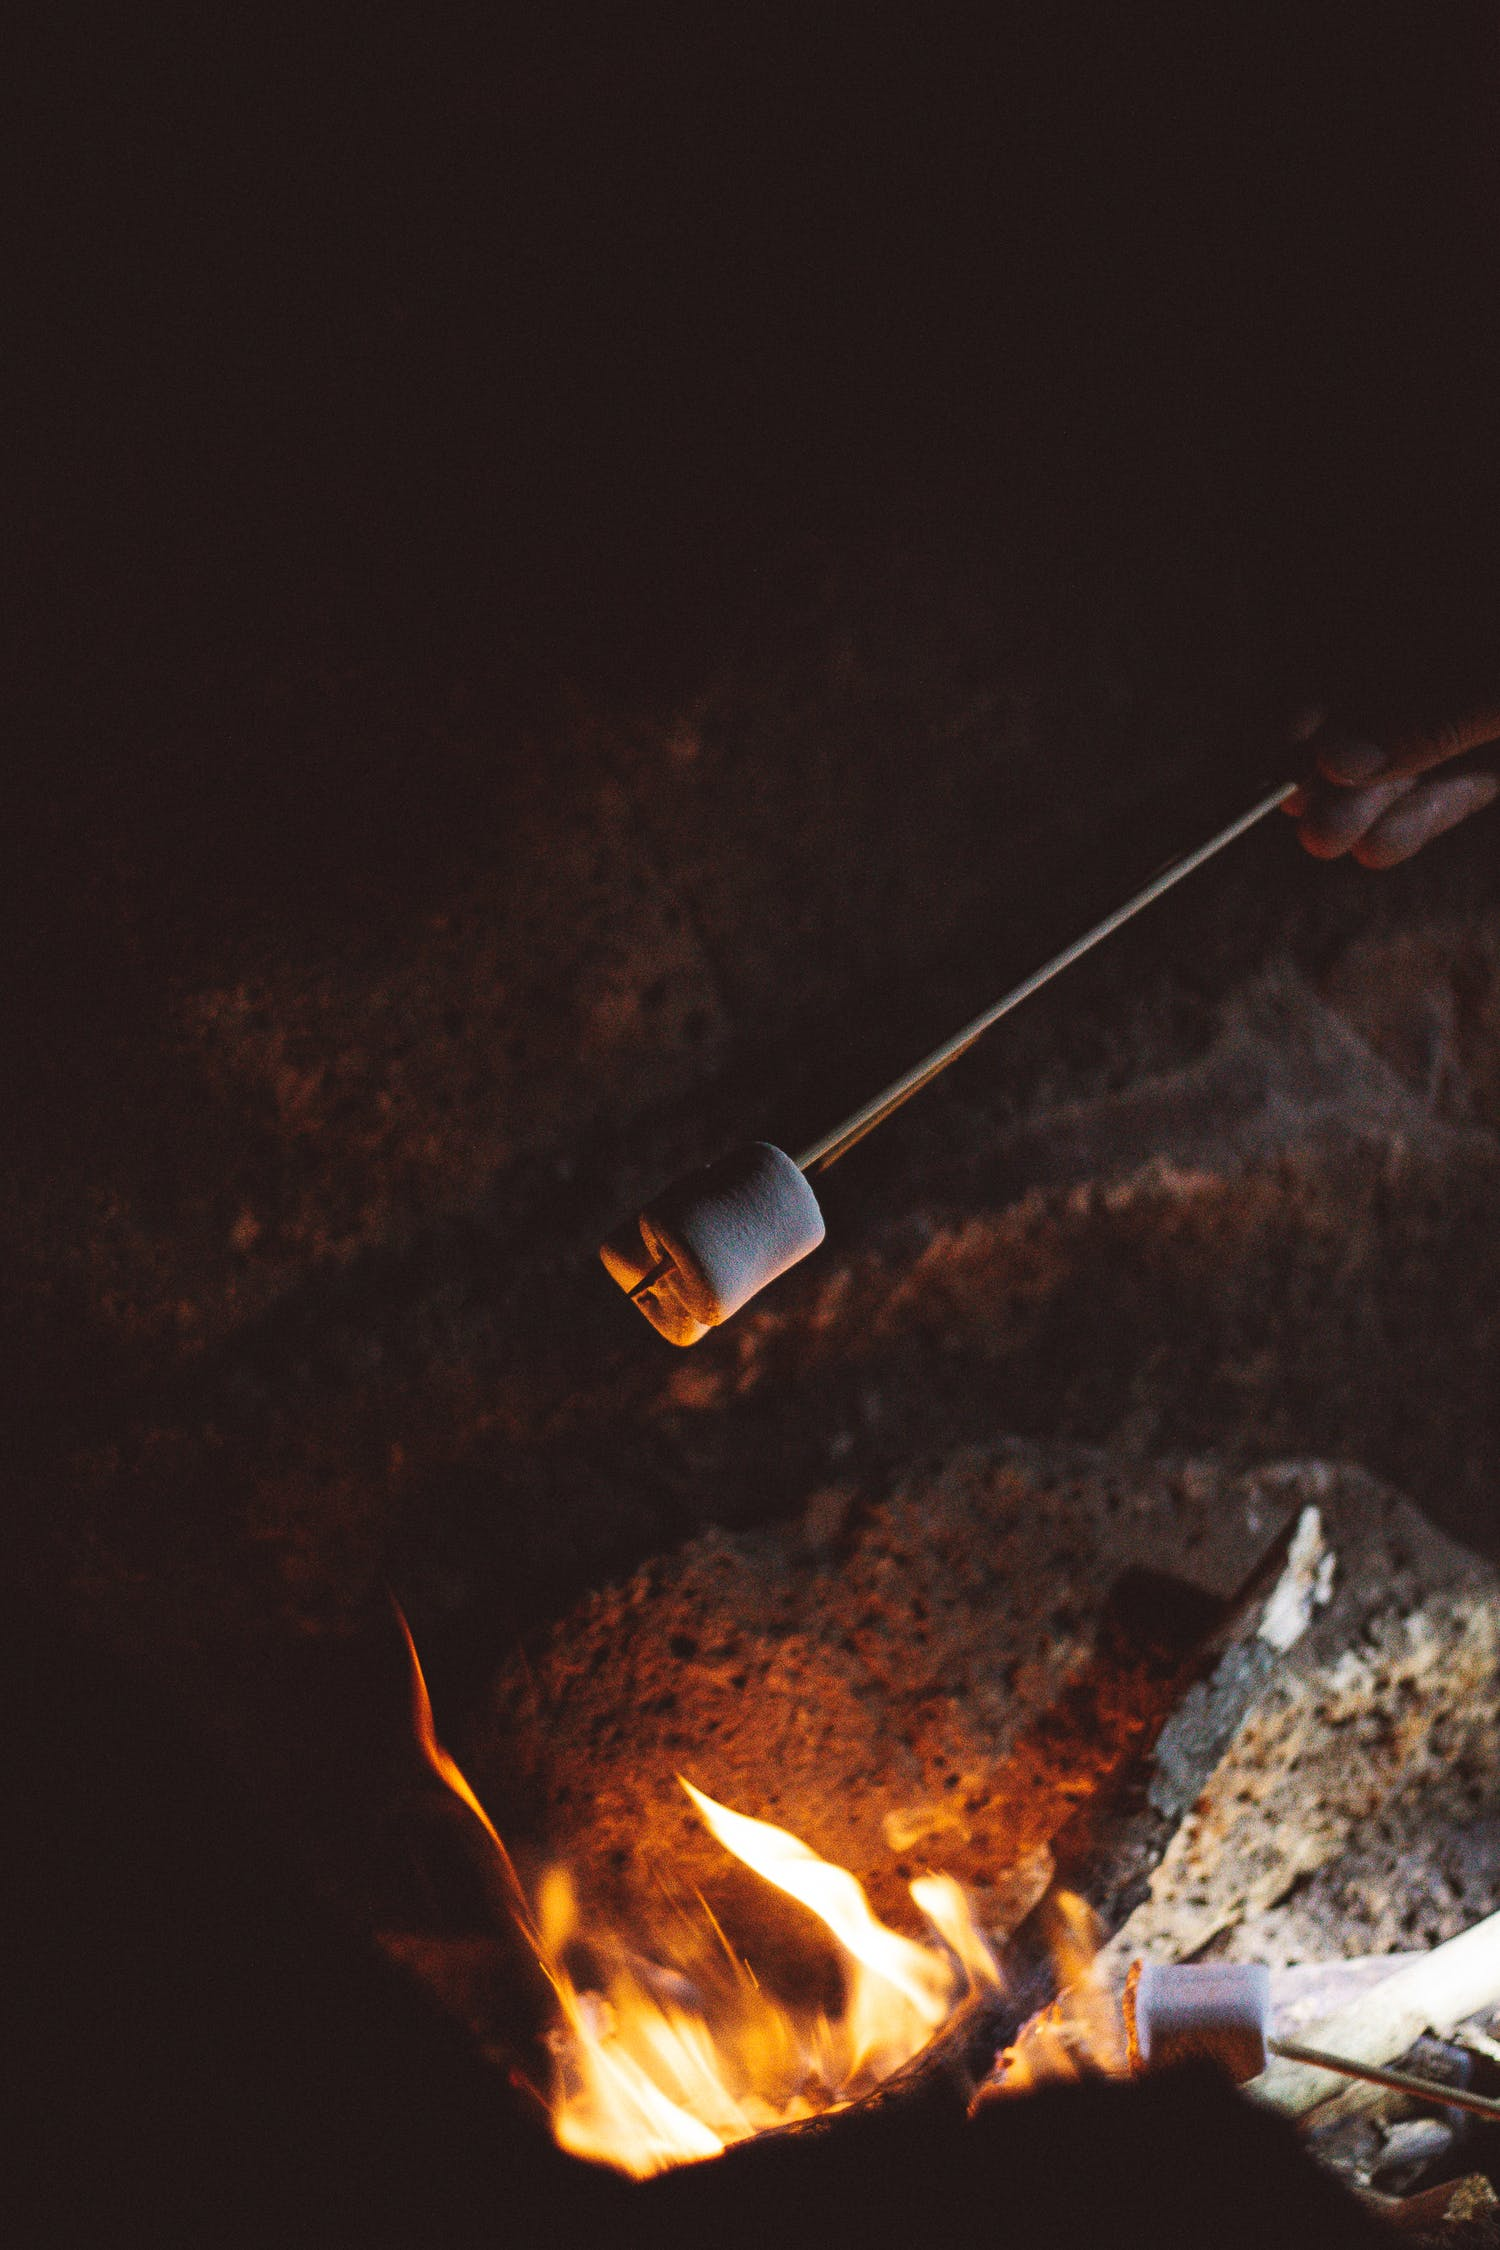 Marshmallow Grilled on Fire